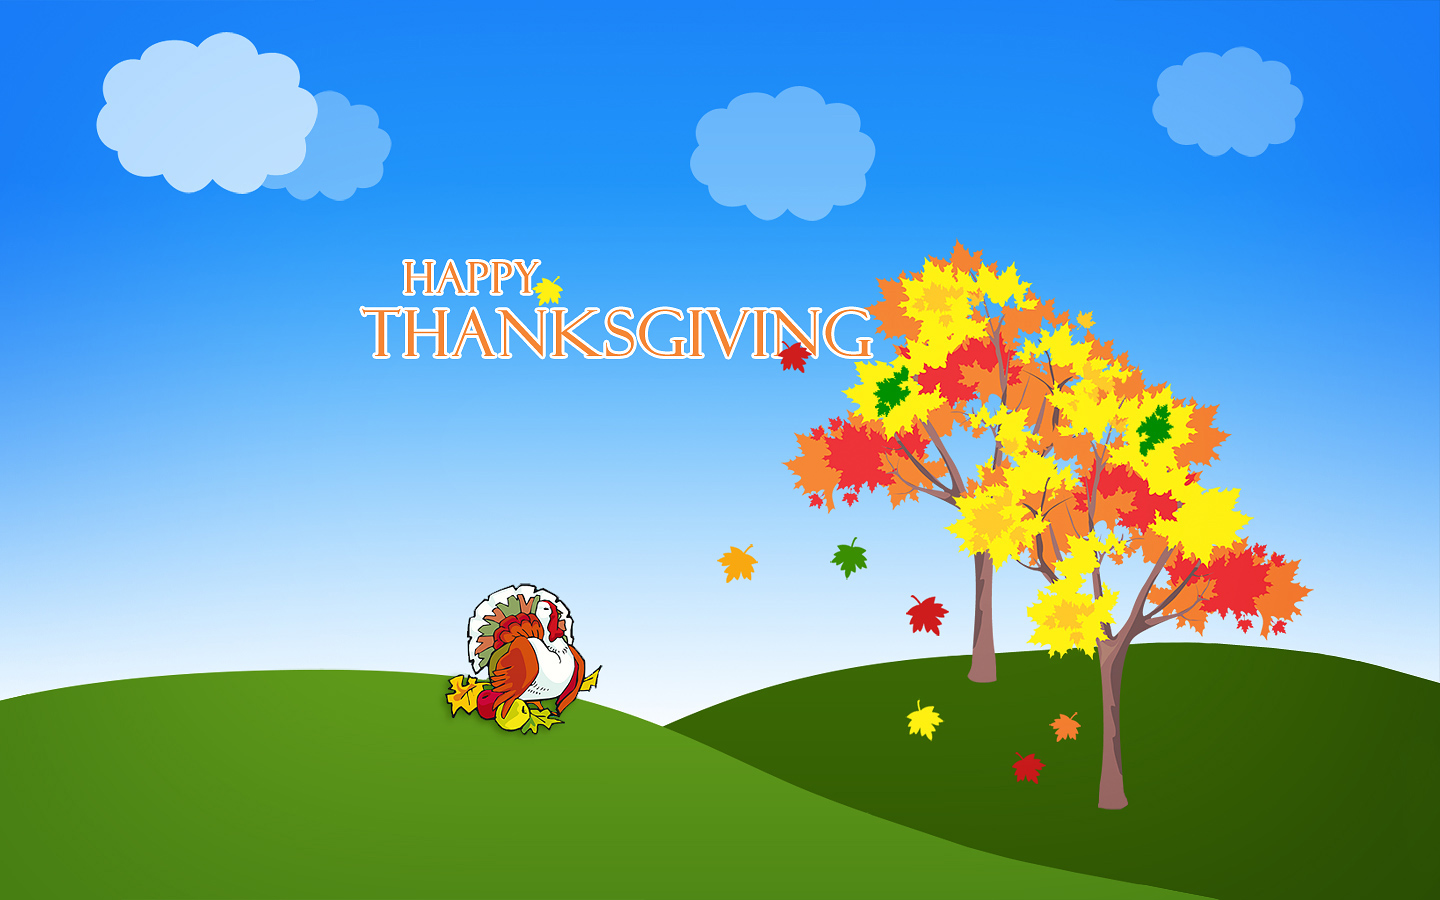 Thanksgiving Desktop Wallpapers   Funny Thanksgiving Pictures 1440x900